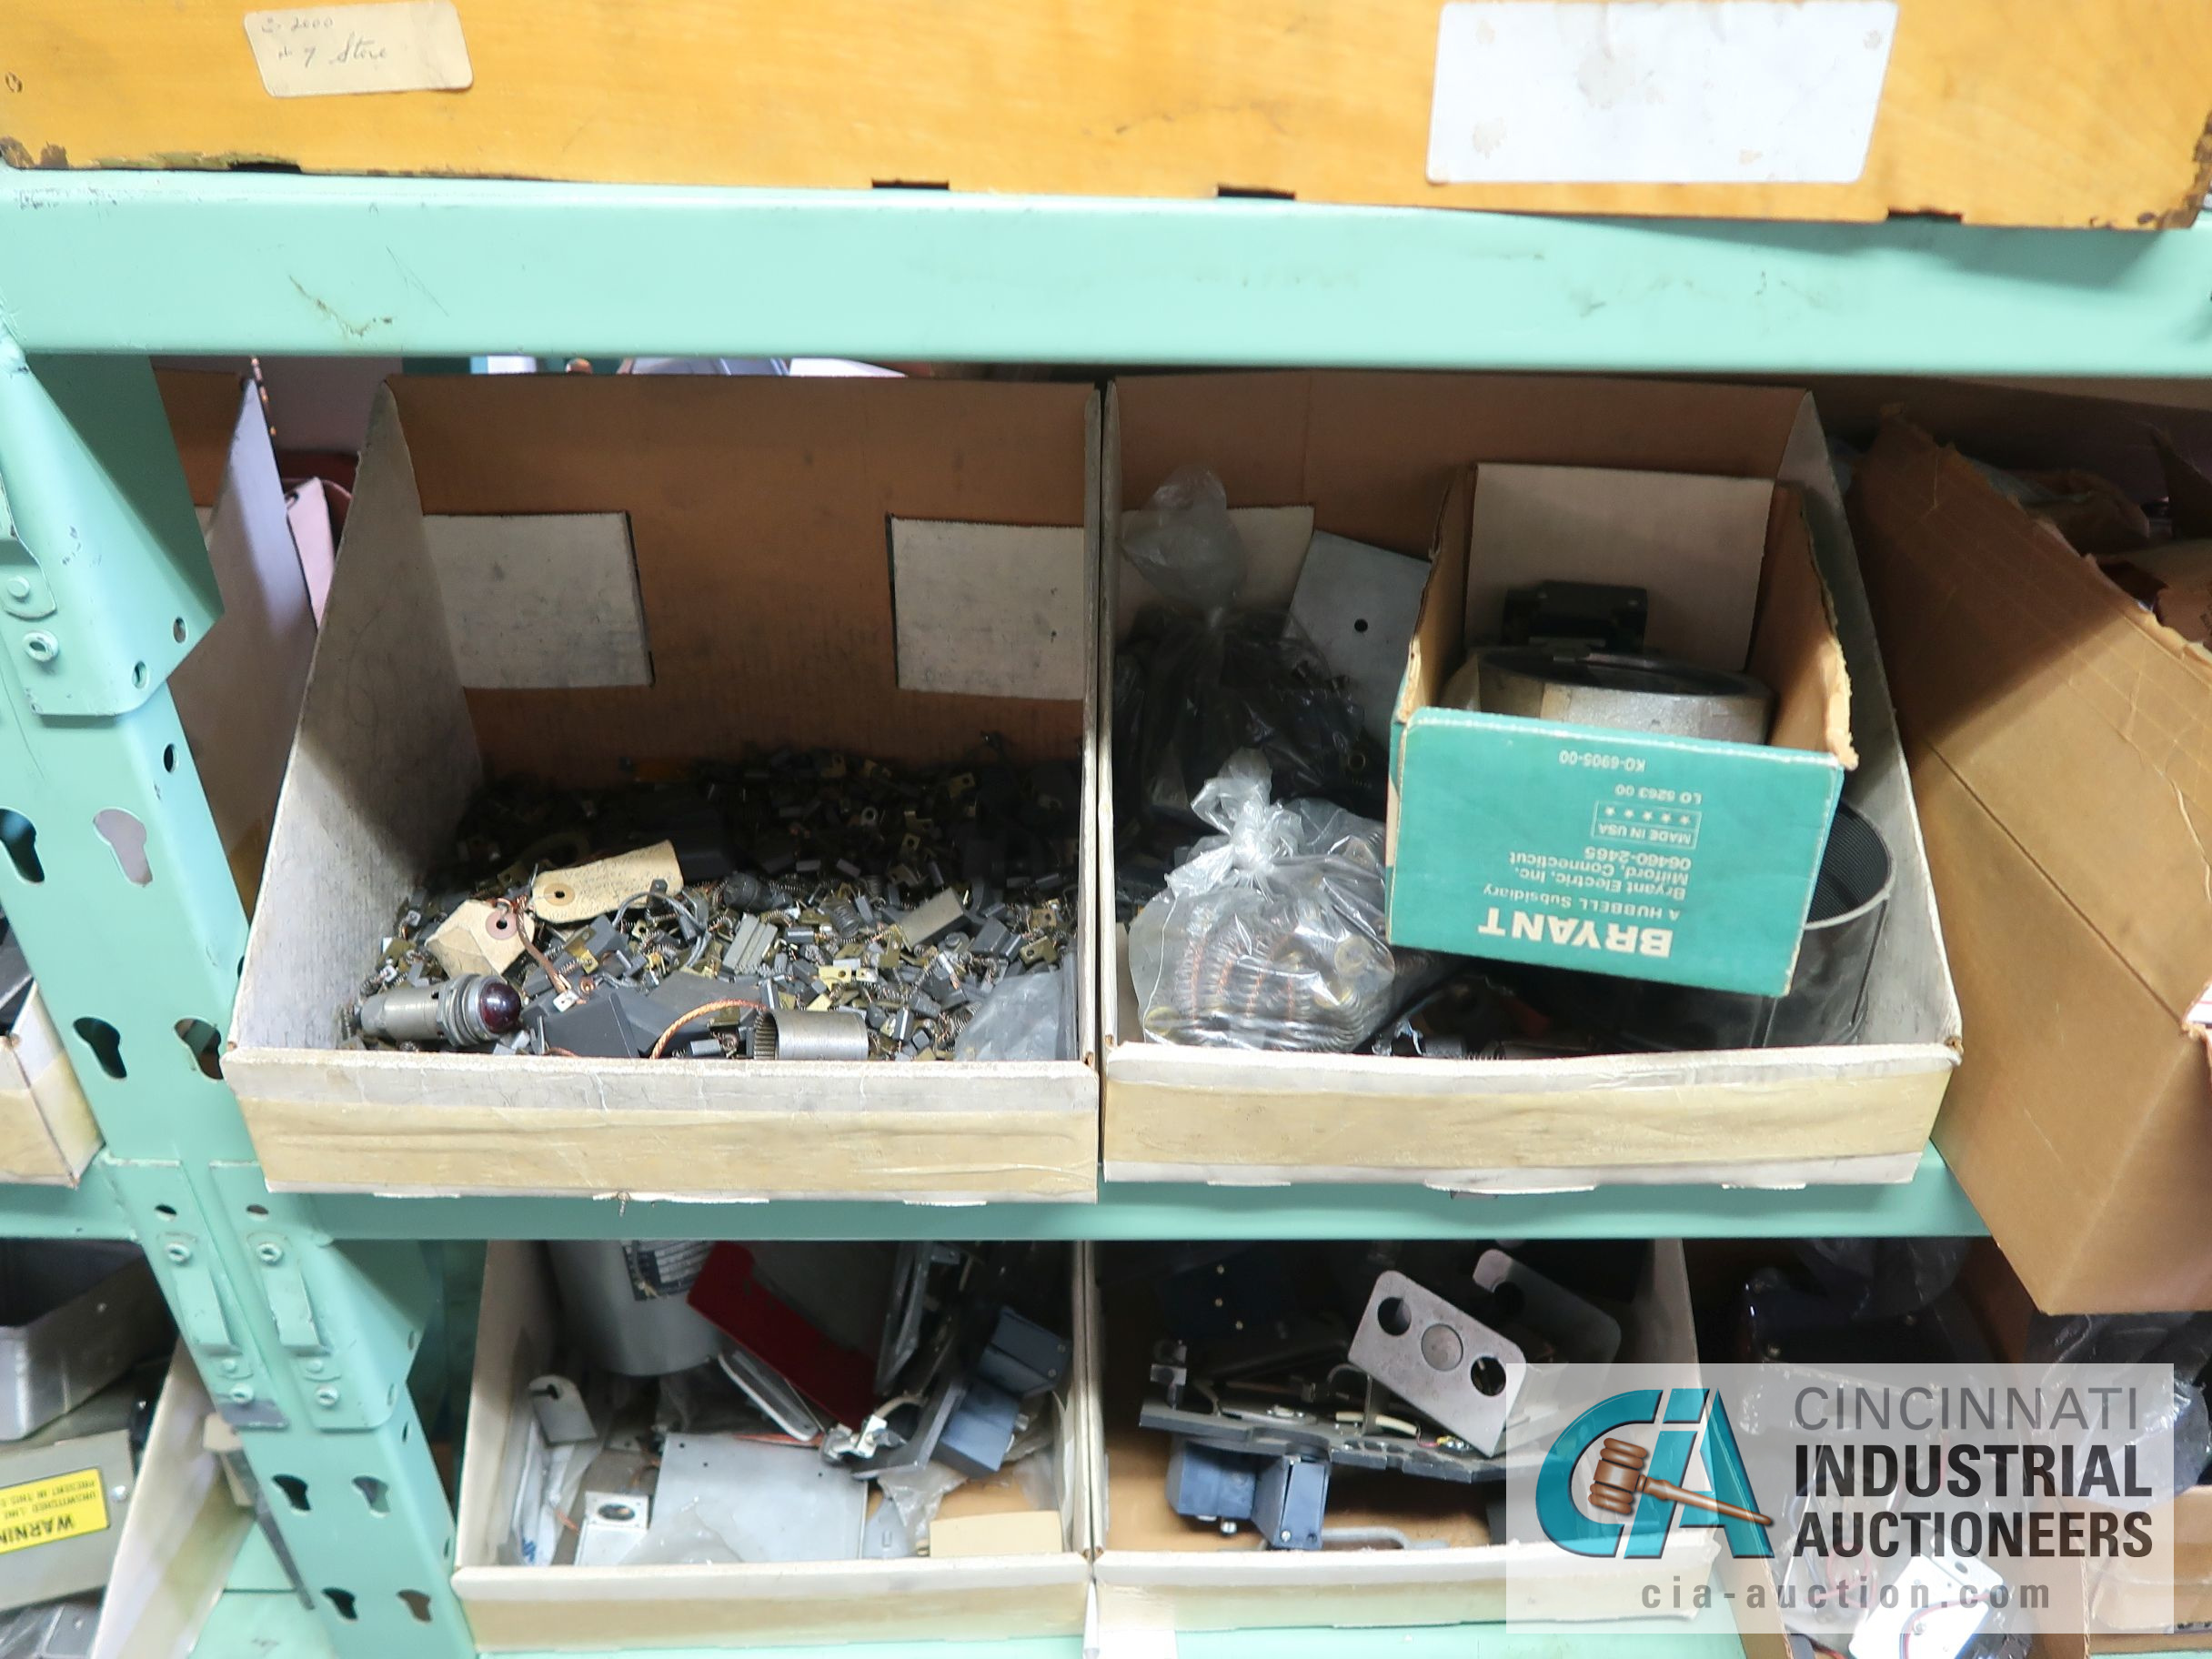 CONTENTS OF (6) RACKS INCLUDING MISCELLANEOUS AUTOMOTIVE PARTS, BREAKS, ROTORS, GASKETS, MOUNTING - Image 24 of 38